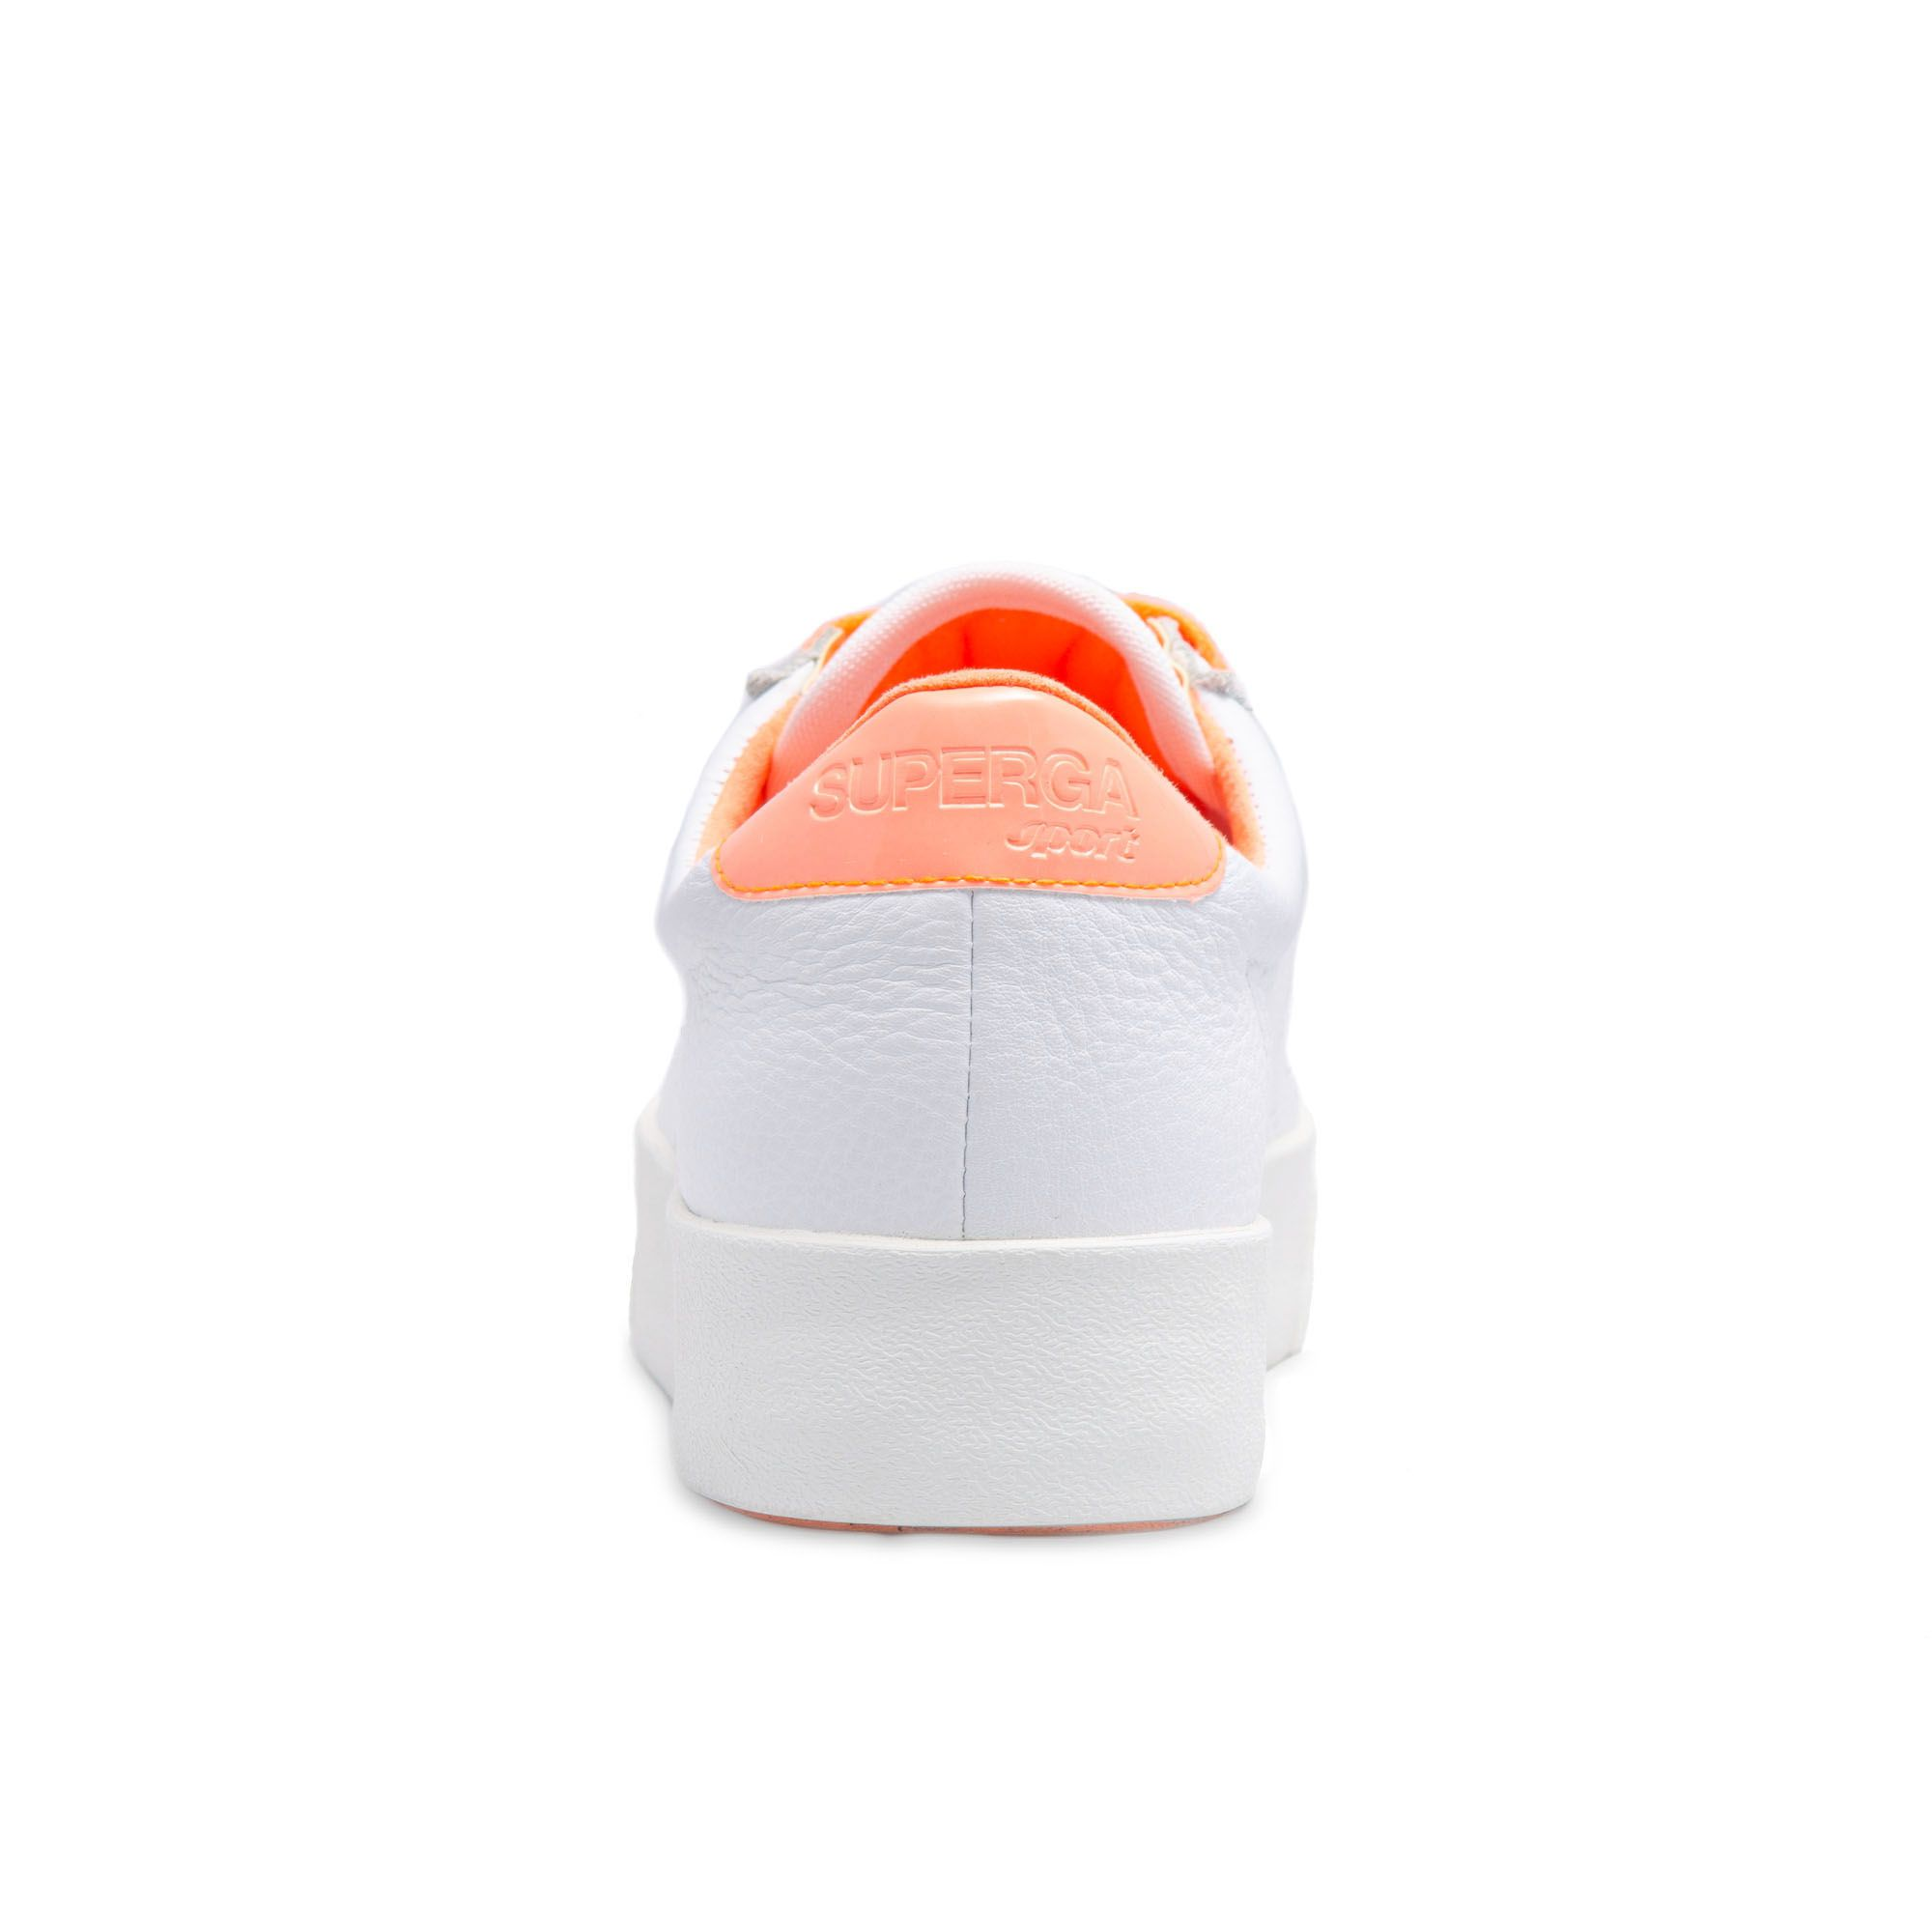 2854 CLUB 3 LEAW ORANGE FLUO